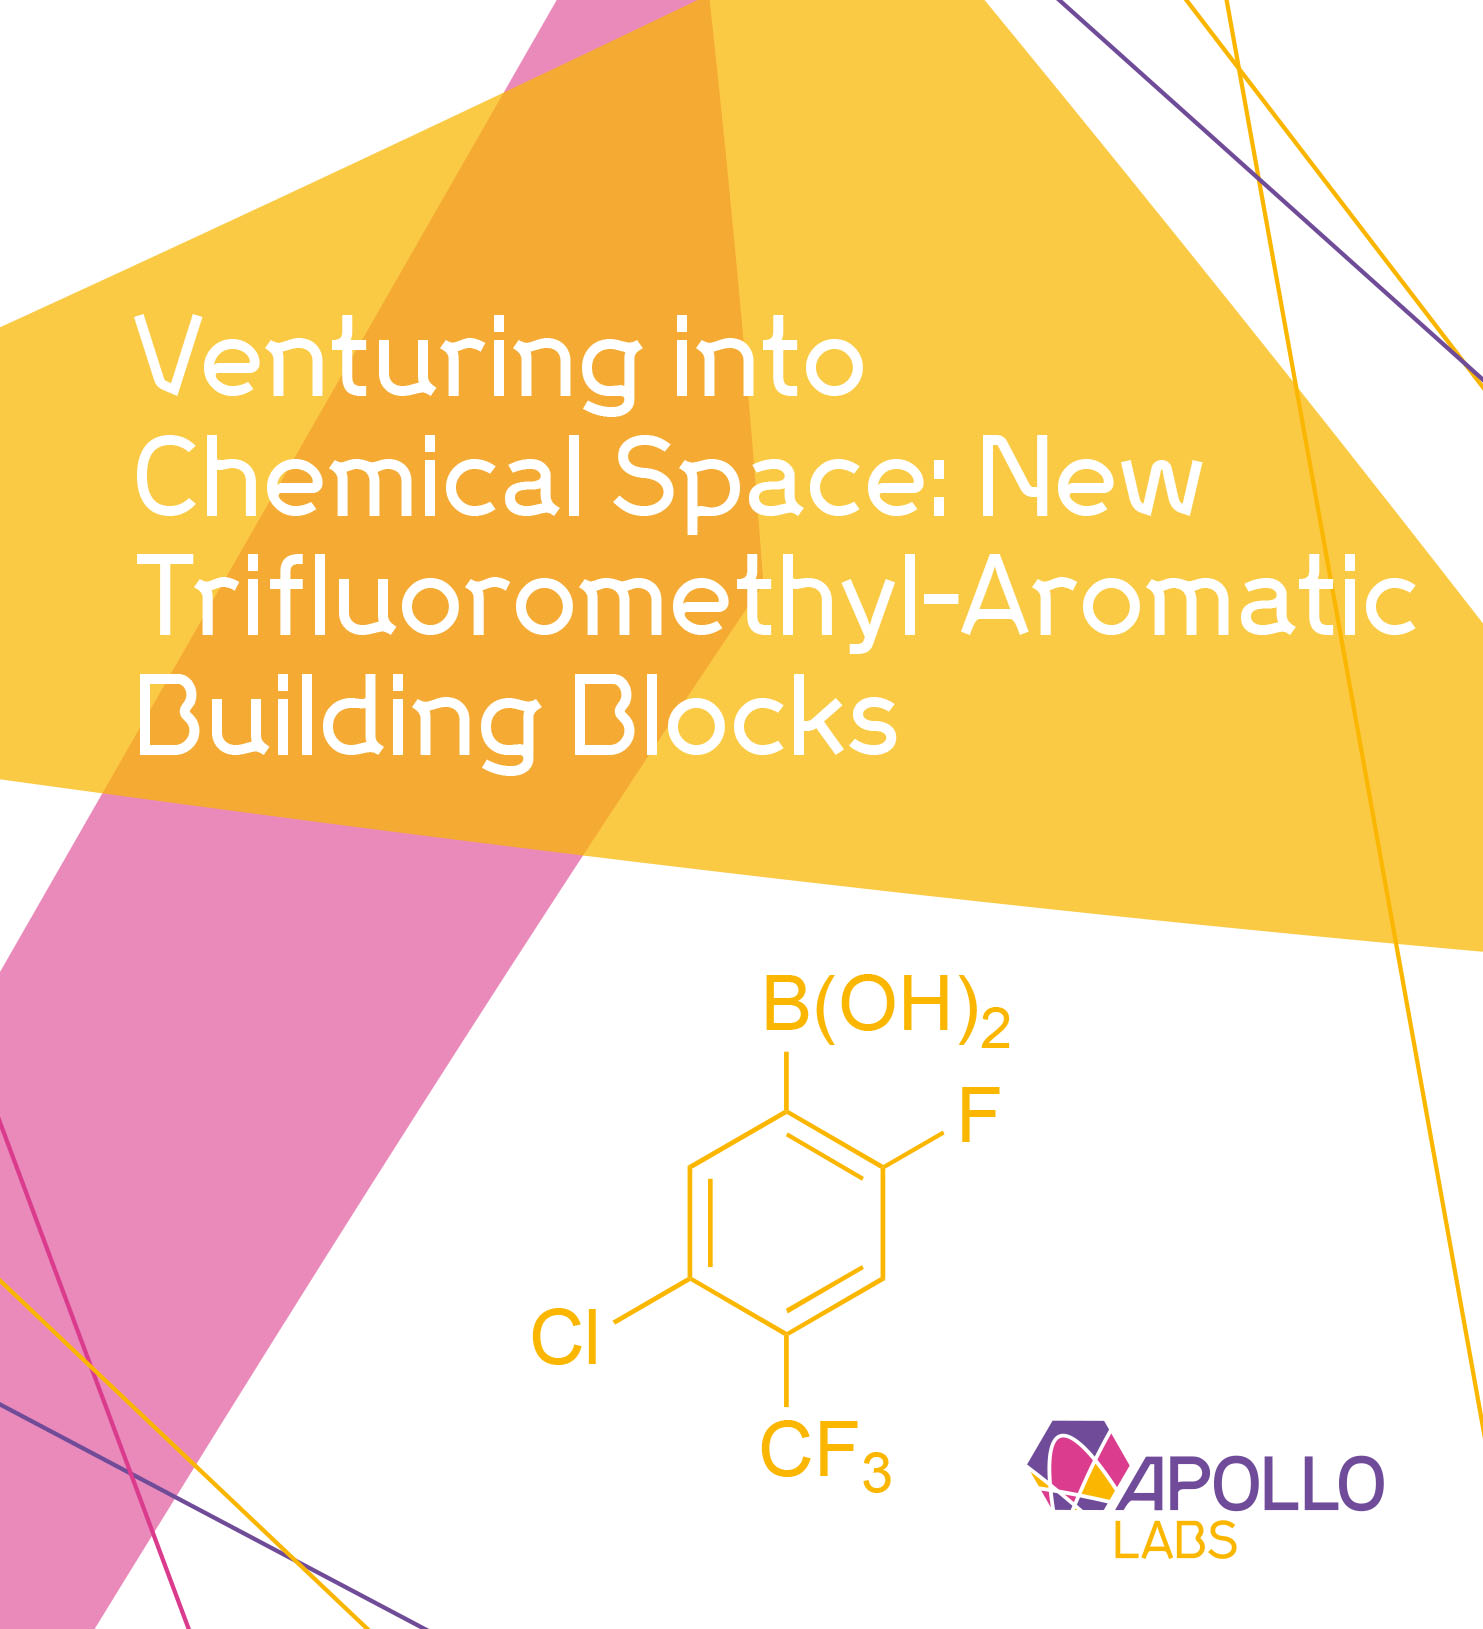 Venturing into Chemical Space: Trifluoromethyl-Aromatic Building Blocks thumbnail image